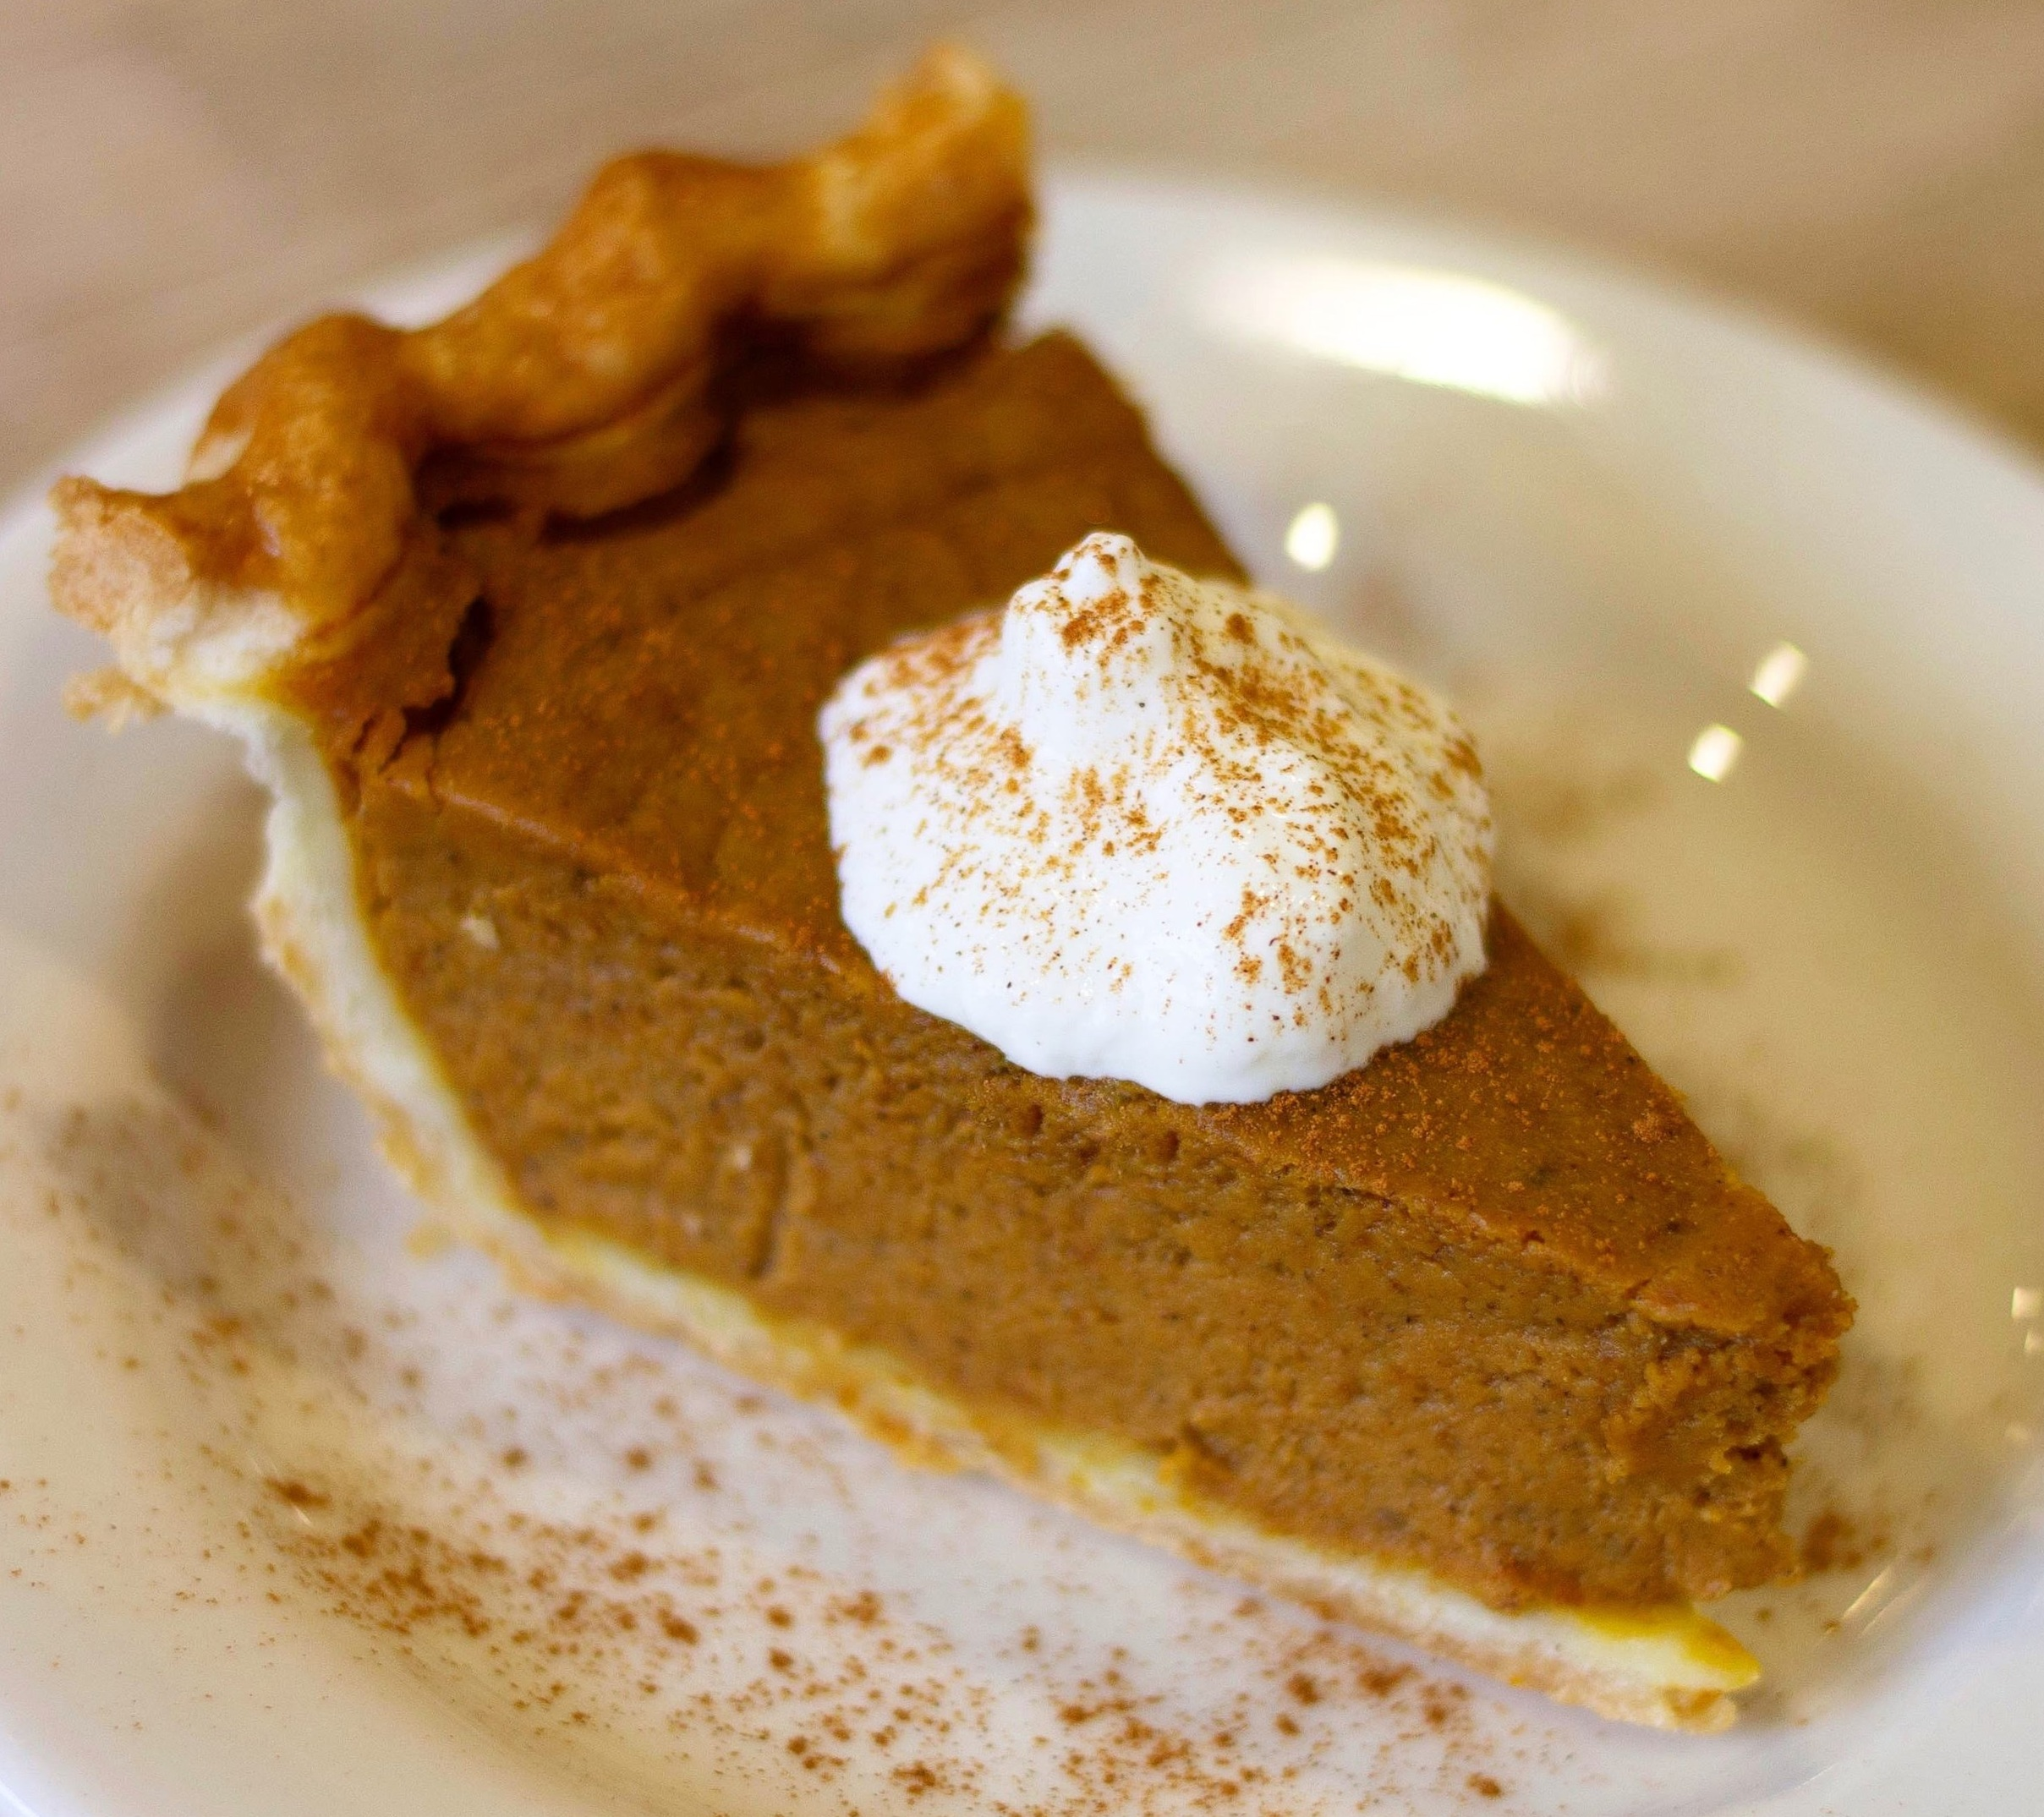 Pumpkin with a Dollop of Whipped Cream and Cinnamon